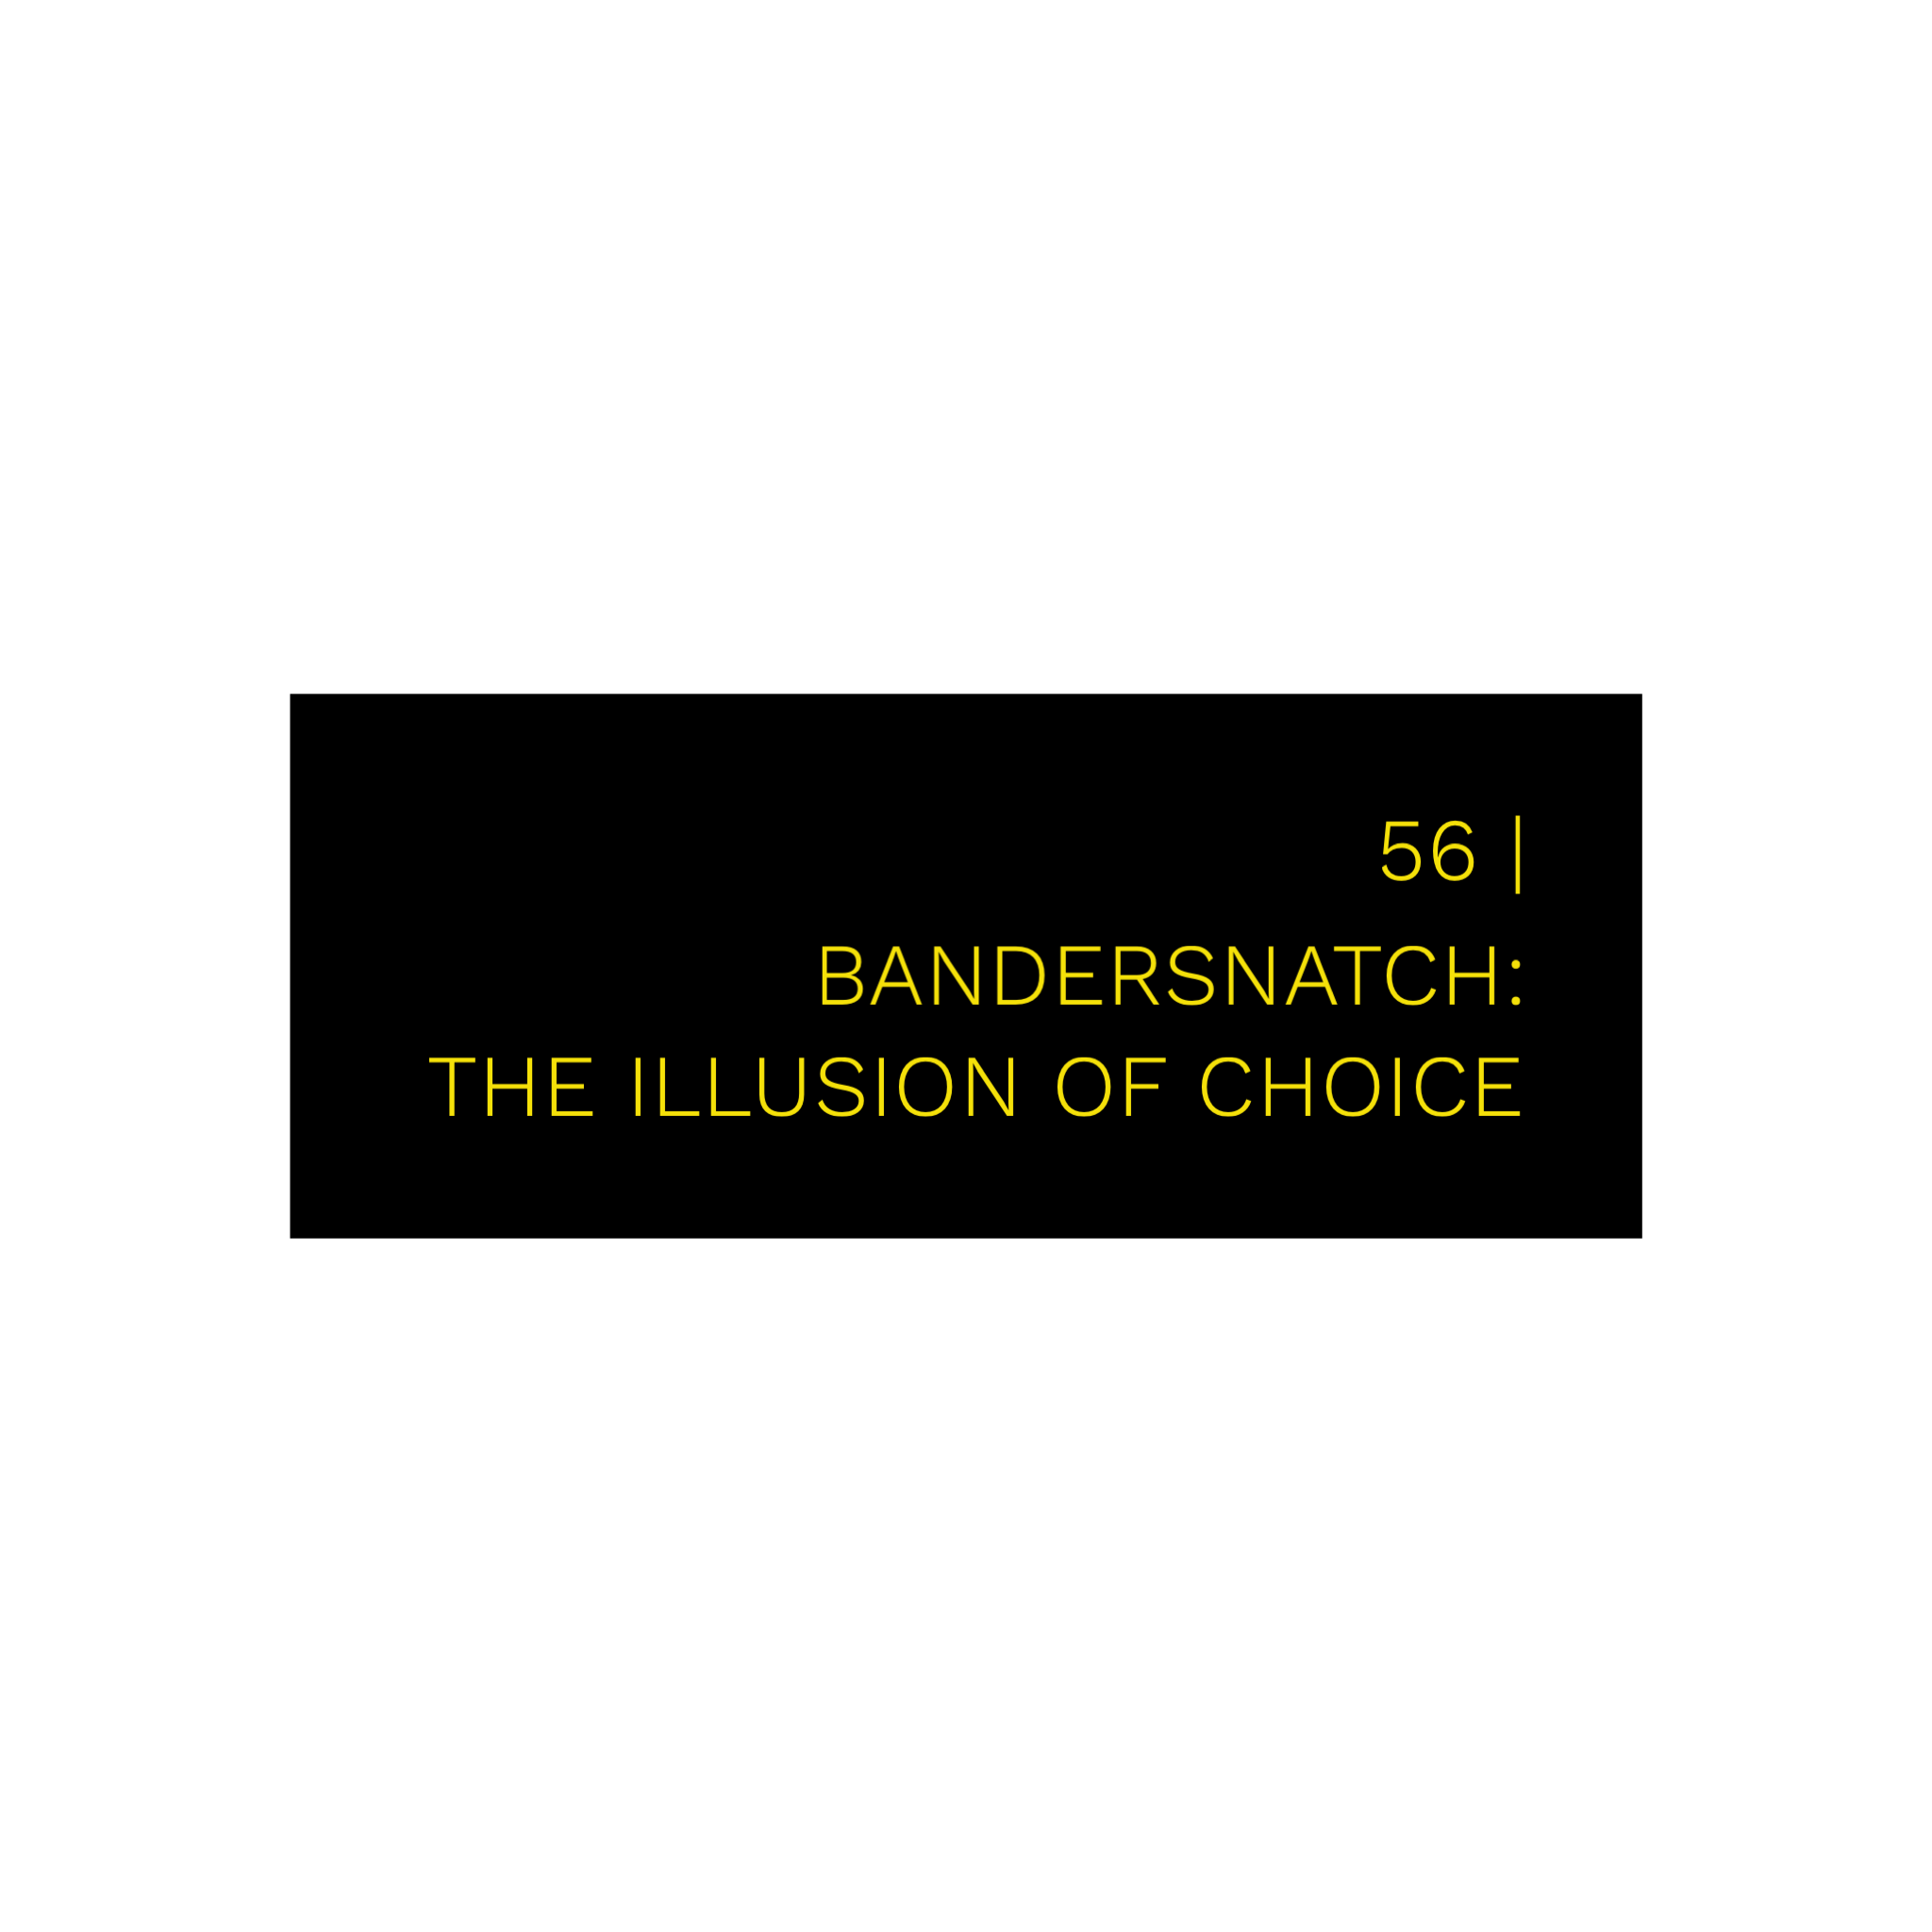 56 | Bandersnatch: The Illusion of Choice